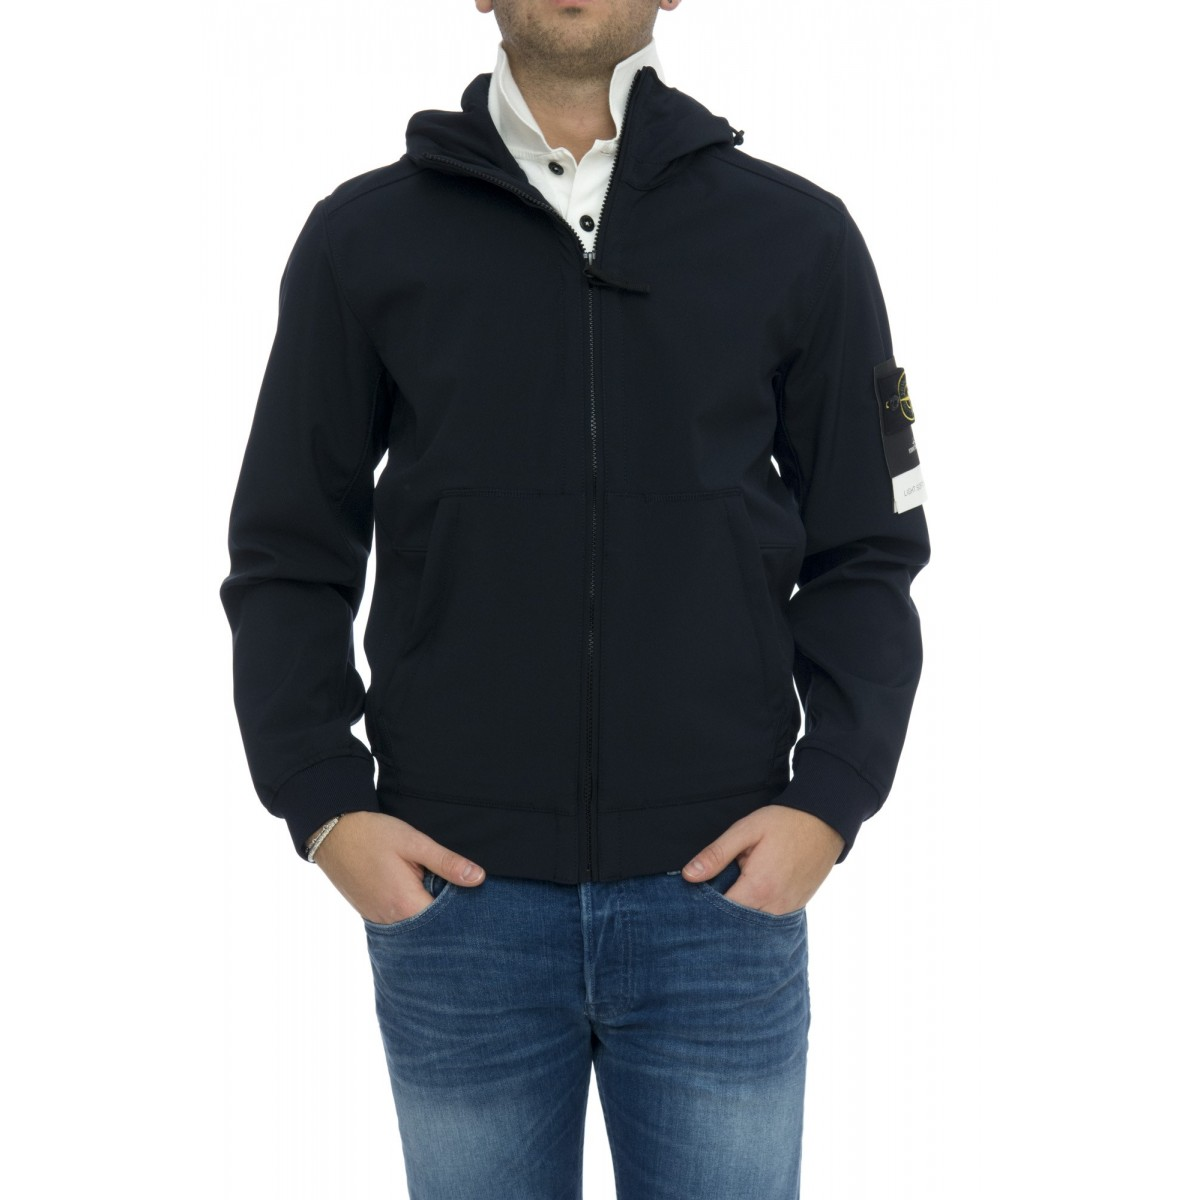 Sport Jacket - 41627 soft shell